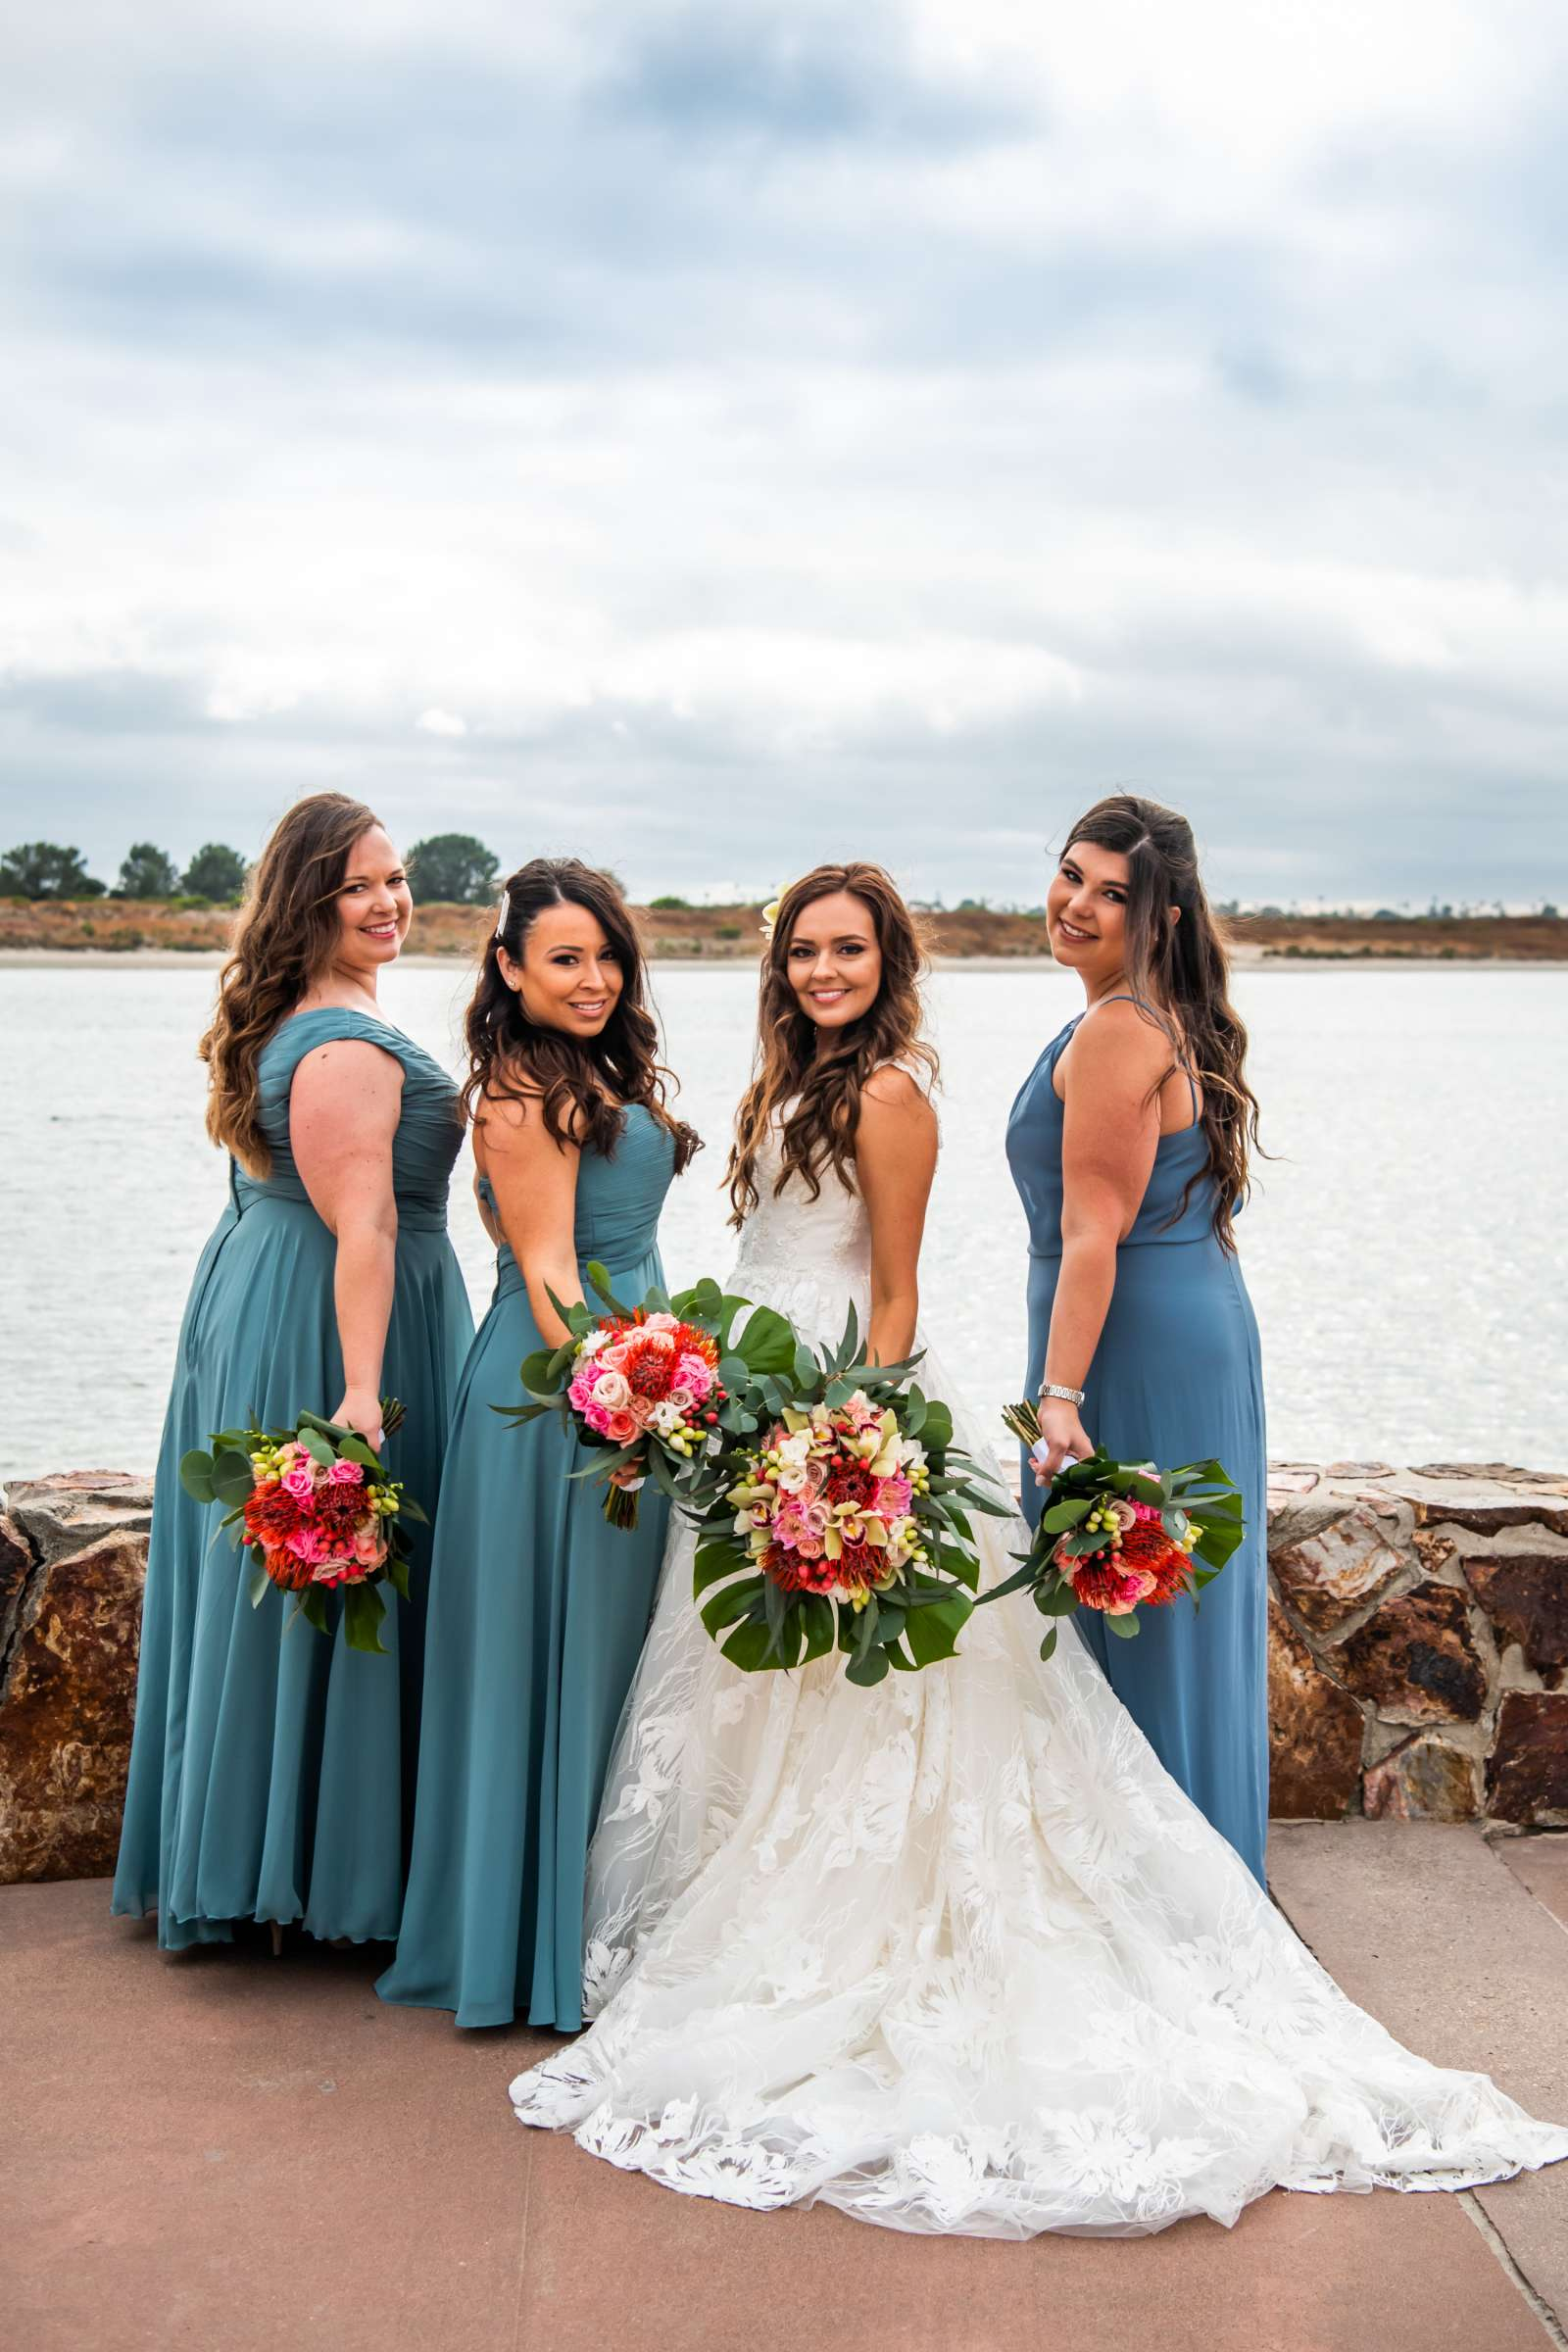 San Diego Mission Bay Resort Wedding coordinated by Cafe Au Love, Lauren and Adam Wedding Photo #108 by True Photography